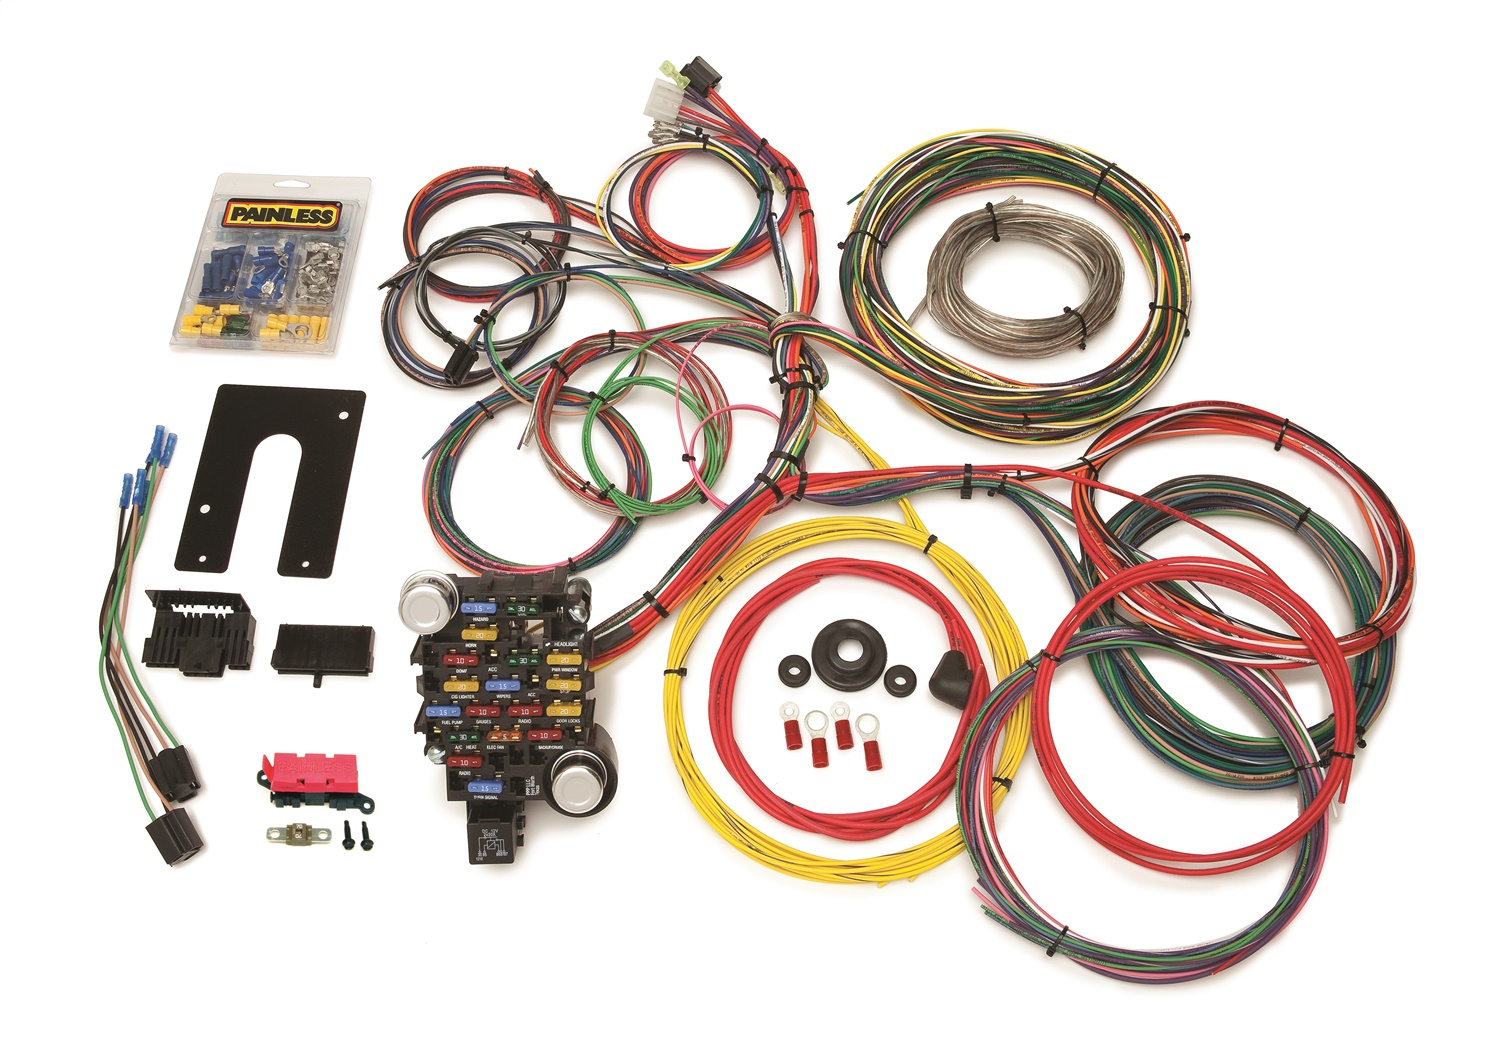 painless wiring harness and chassis painless wiring 10203 chassis wire harness ebay  painless wiring 10203 chassis wire